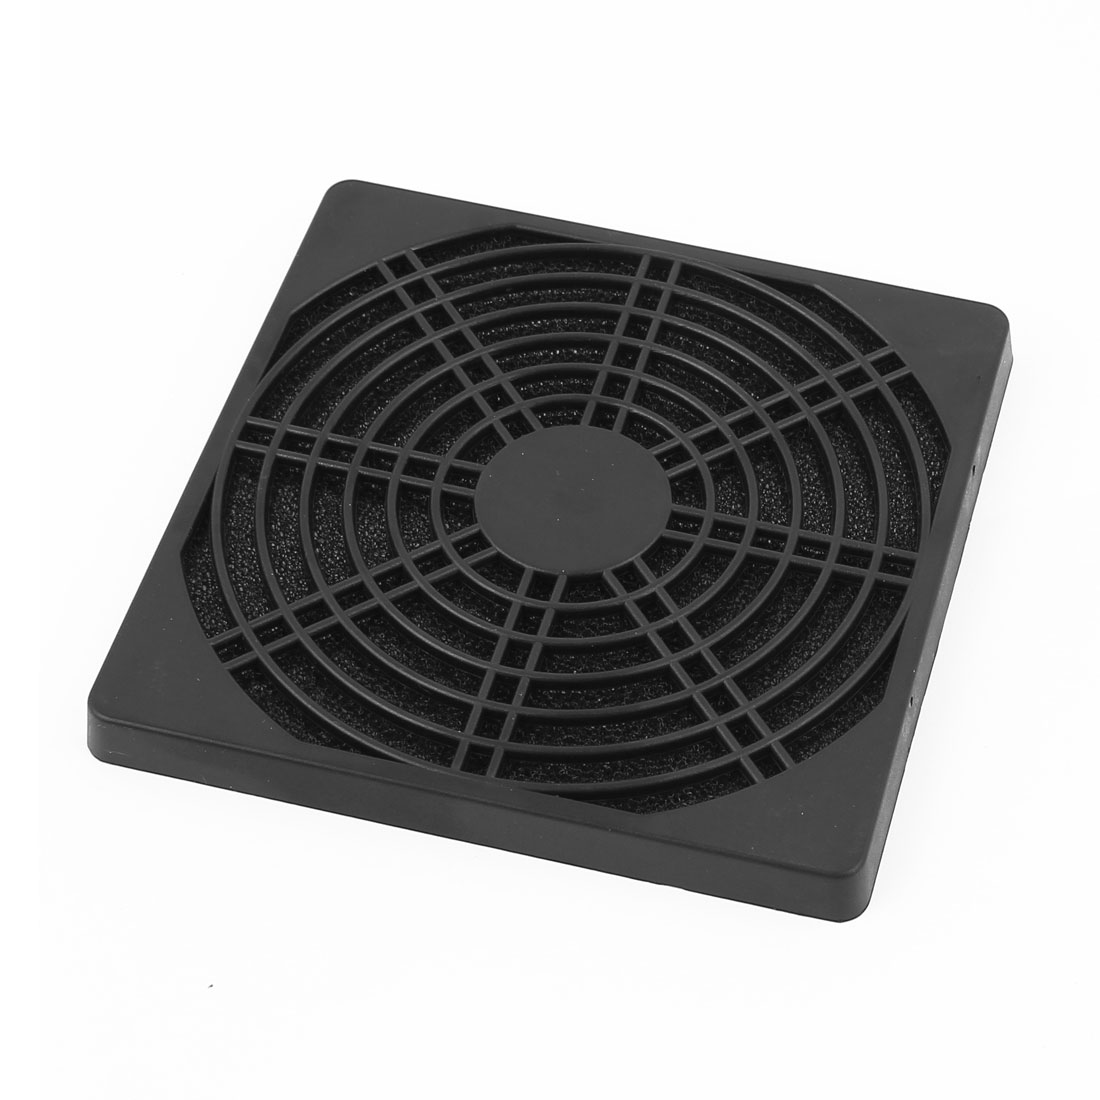 Dustproof 125mm Case Fan Dust Filter Guard Grill Protector Cover for PC Computer